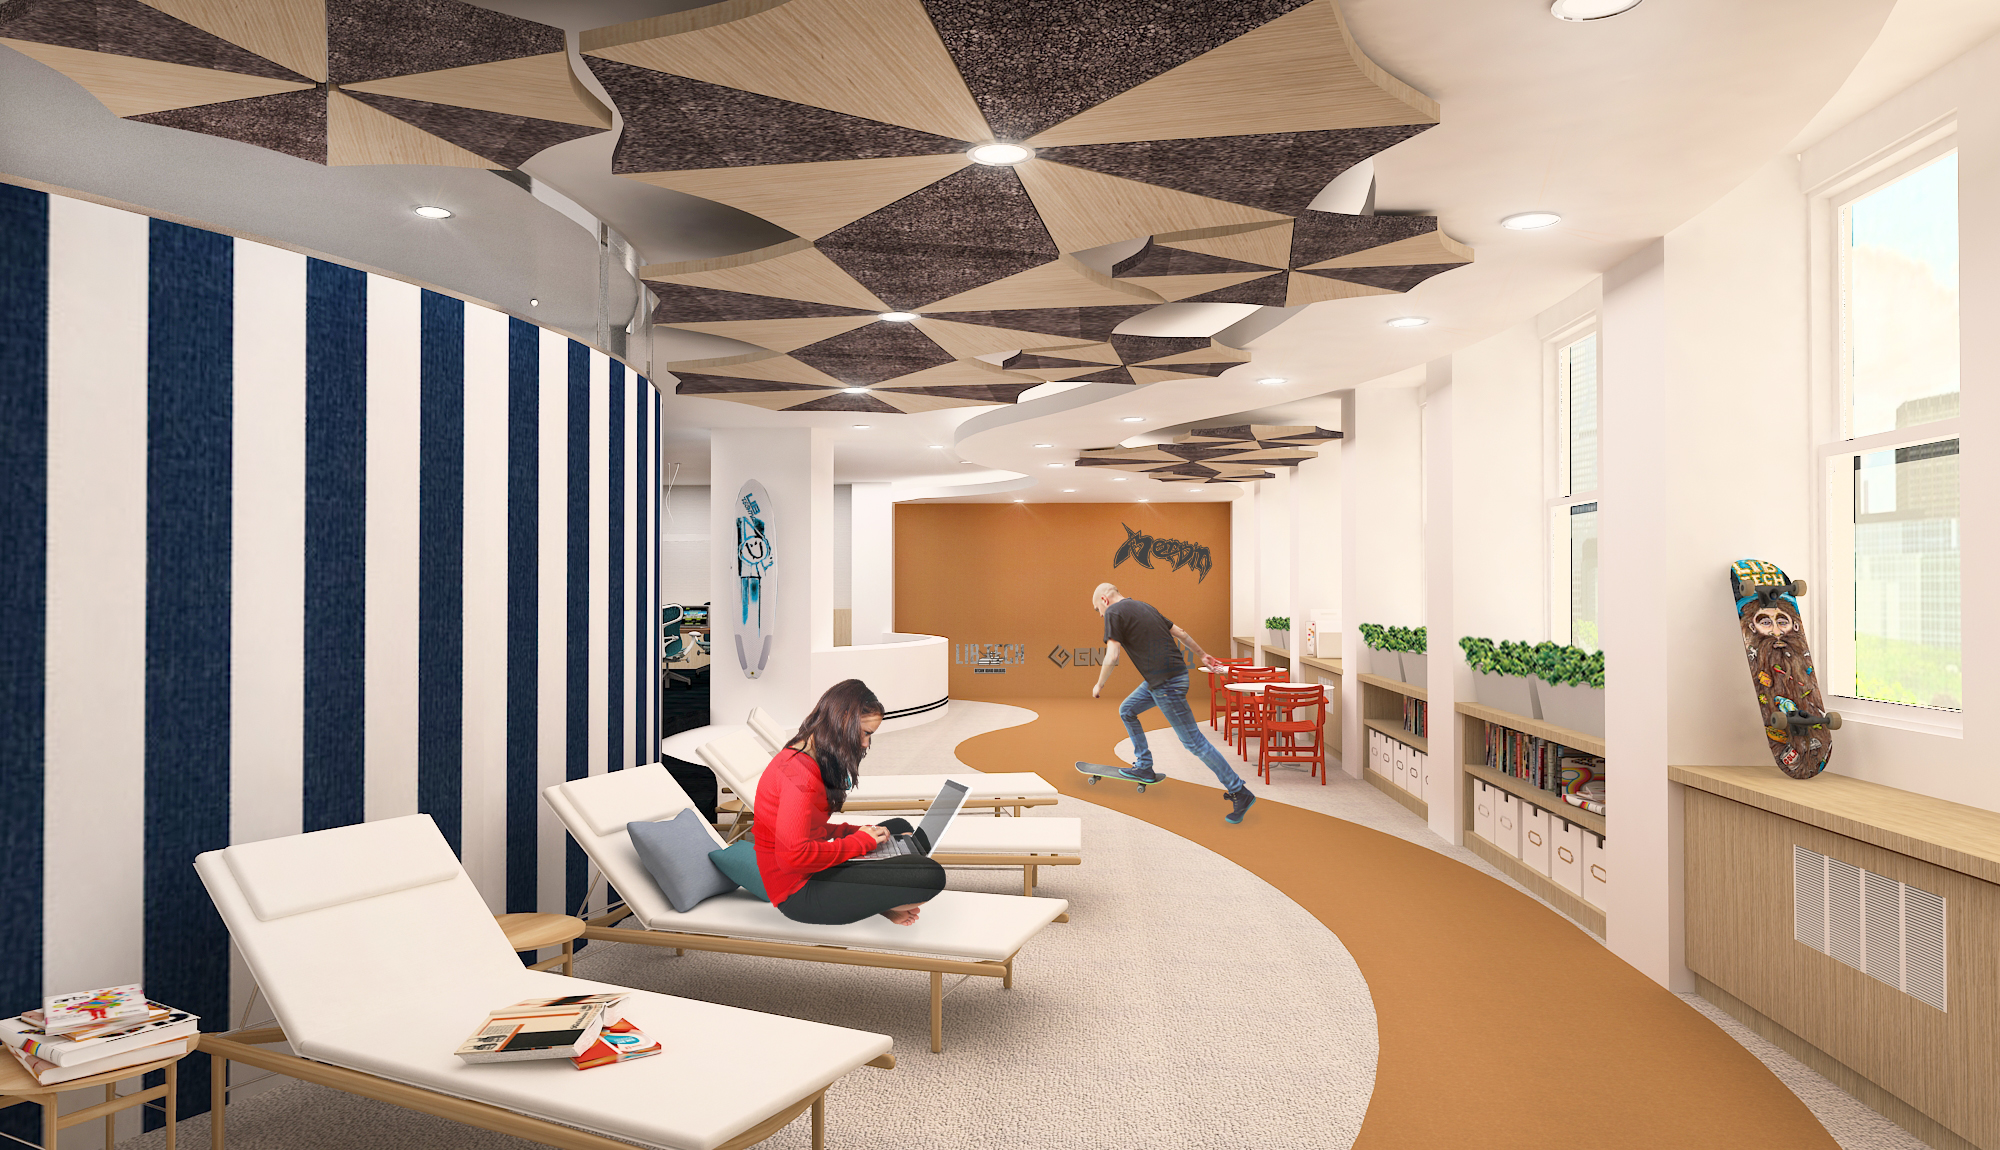 daungjai-masrungson-mervin-headquarters-mps-sustainable-interior-environments-commercial-project_17616959286_o.jpg